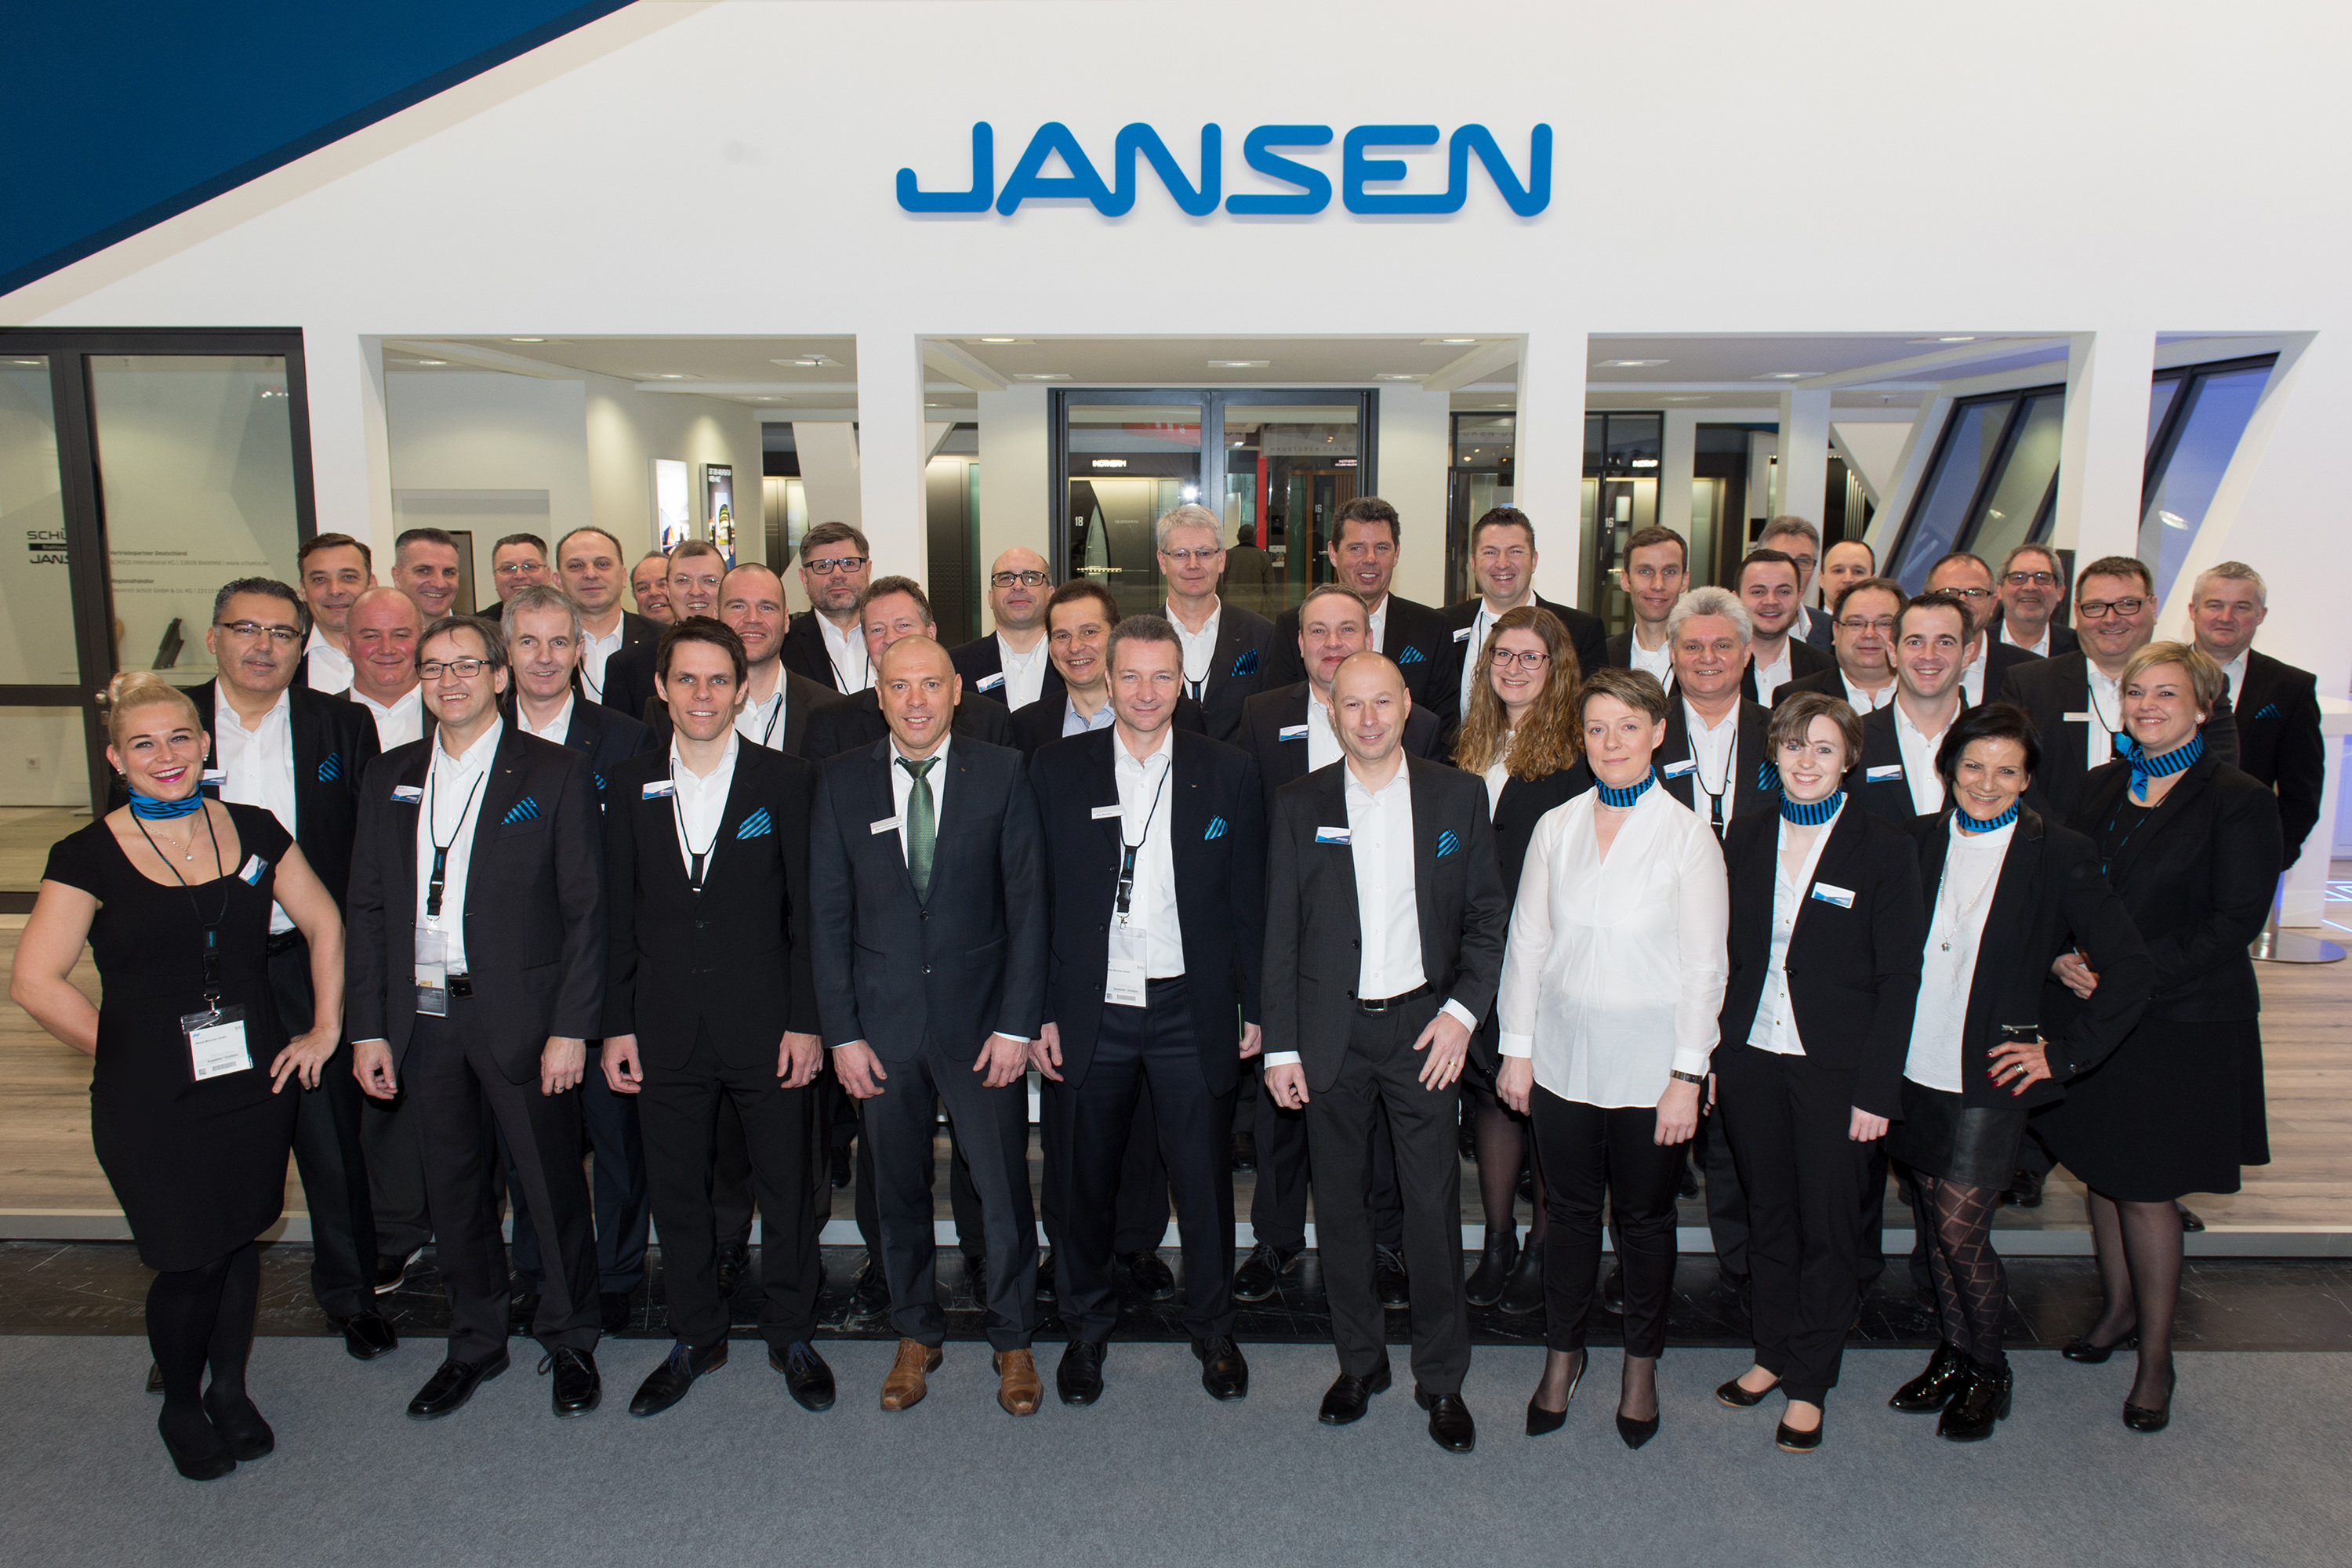 Jansen Jansen Team in Aktion!